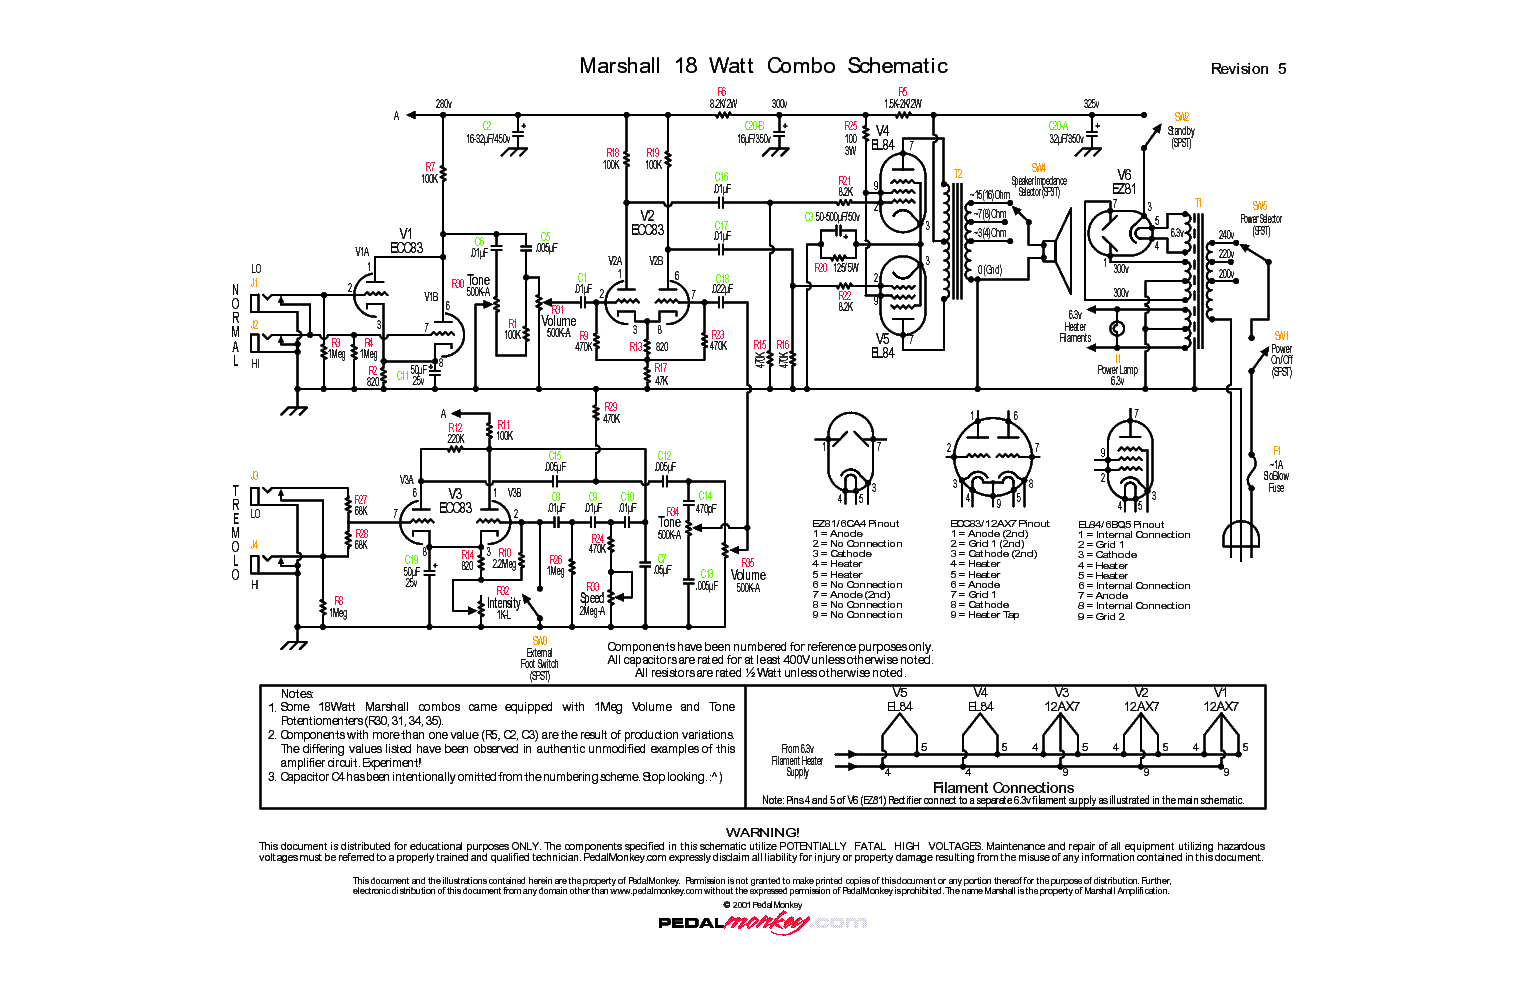 Marshall Mg 412 Wiring Diagram - Wiring Diagrams 24 on